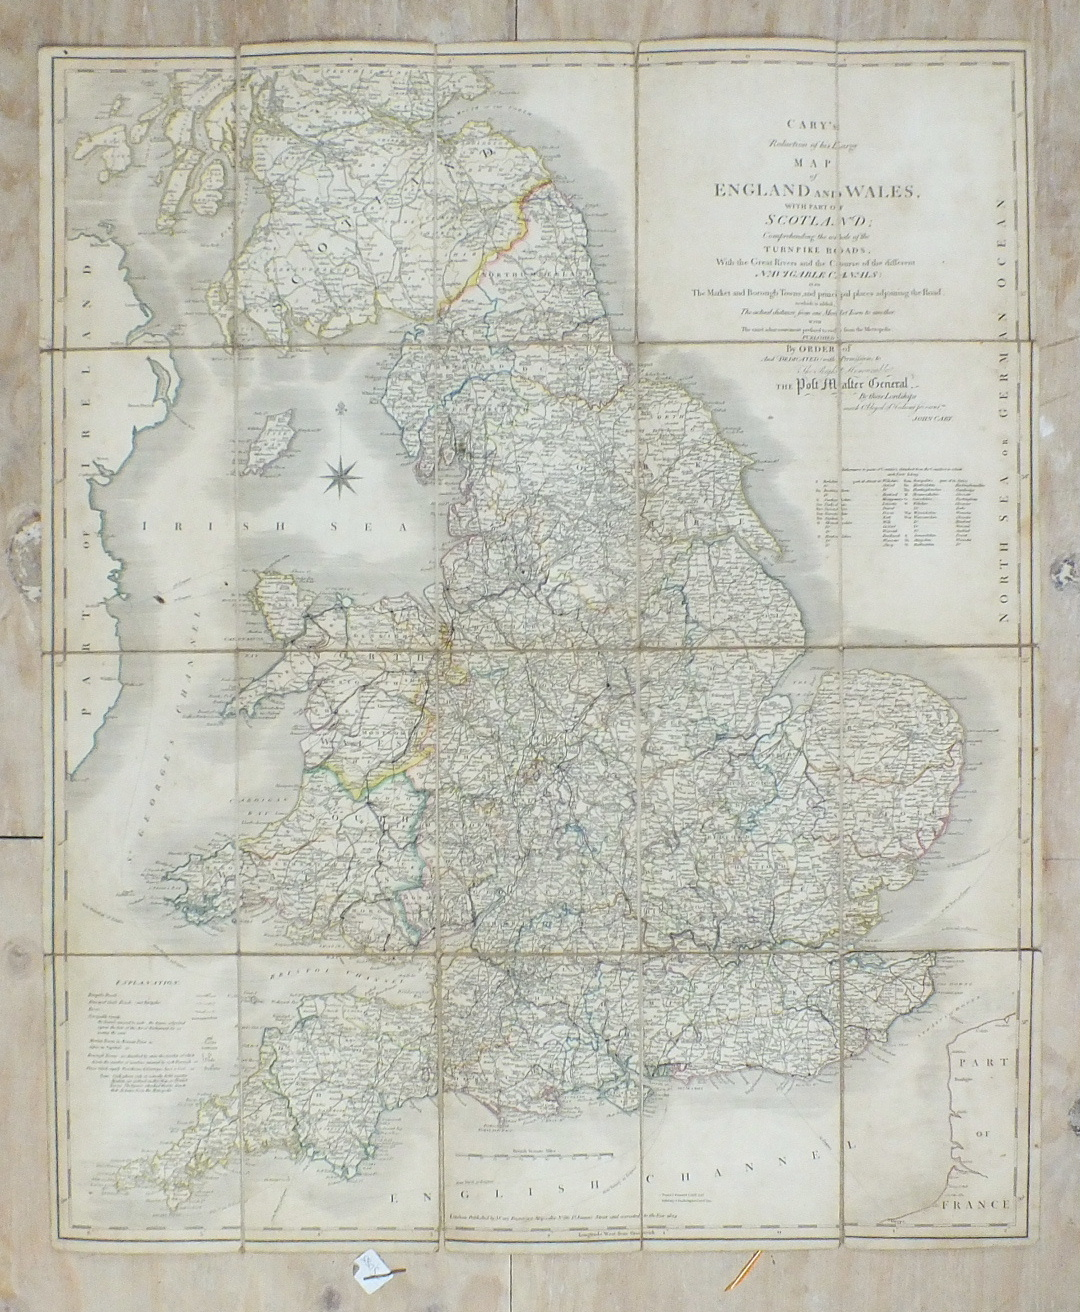 Lot 137 - Cary (John), Cary's Reduction of his Large Map of England and Wales with Part of Scotland.....